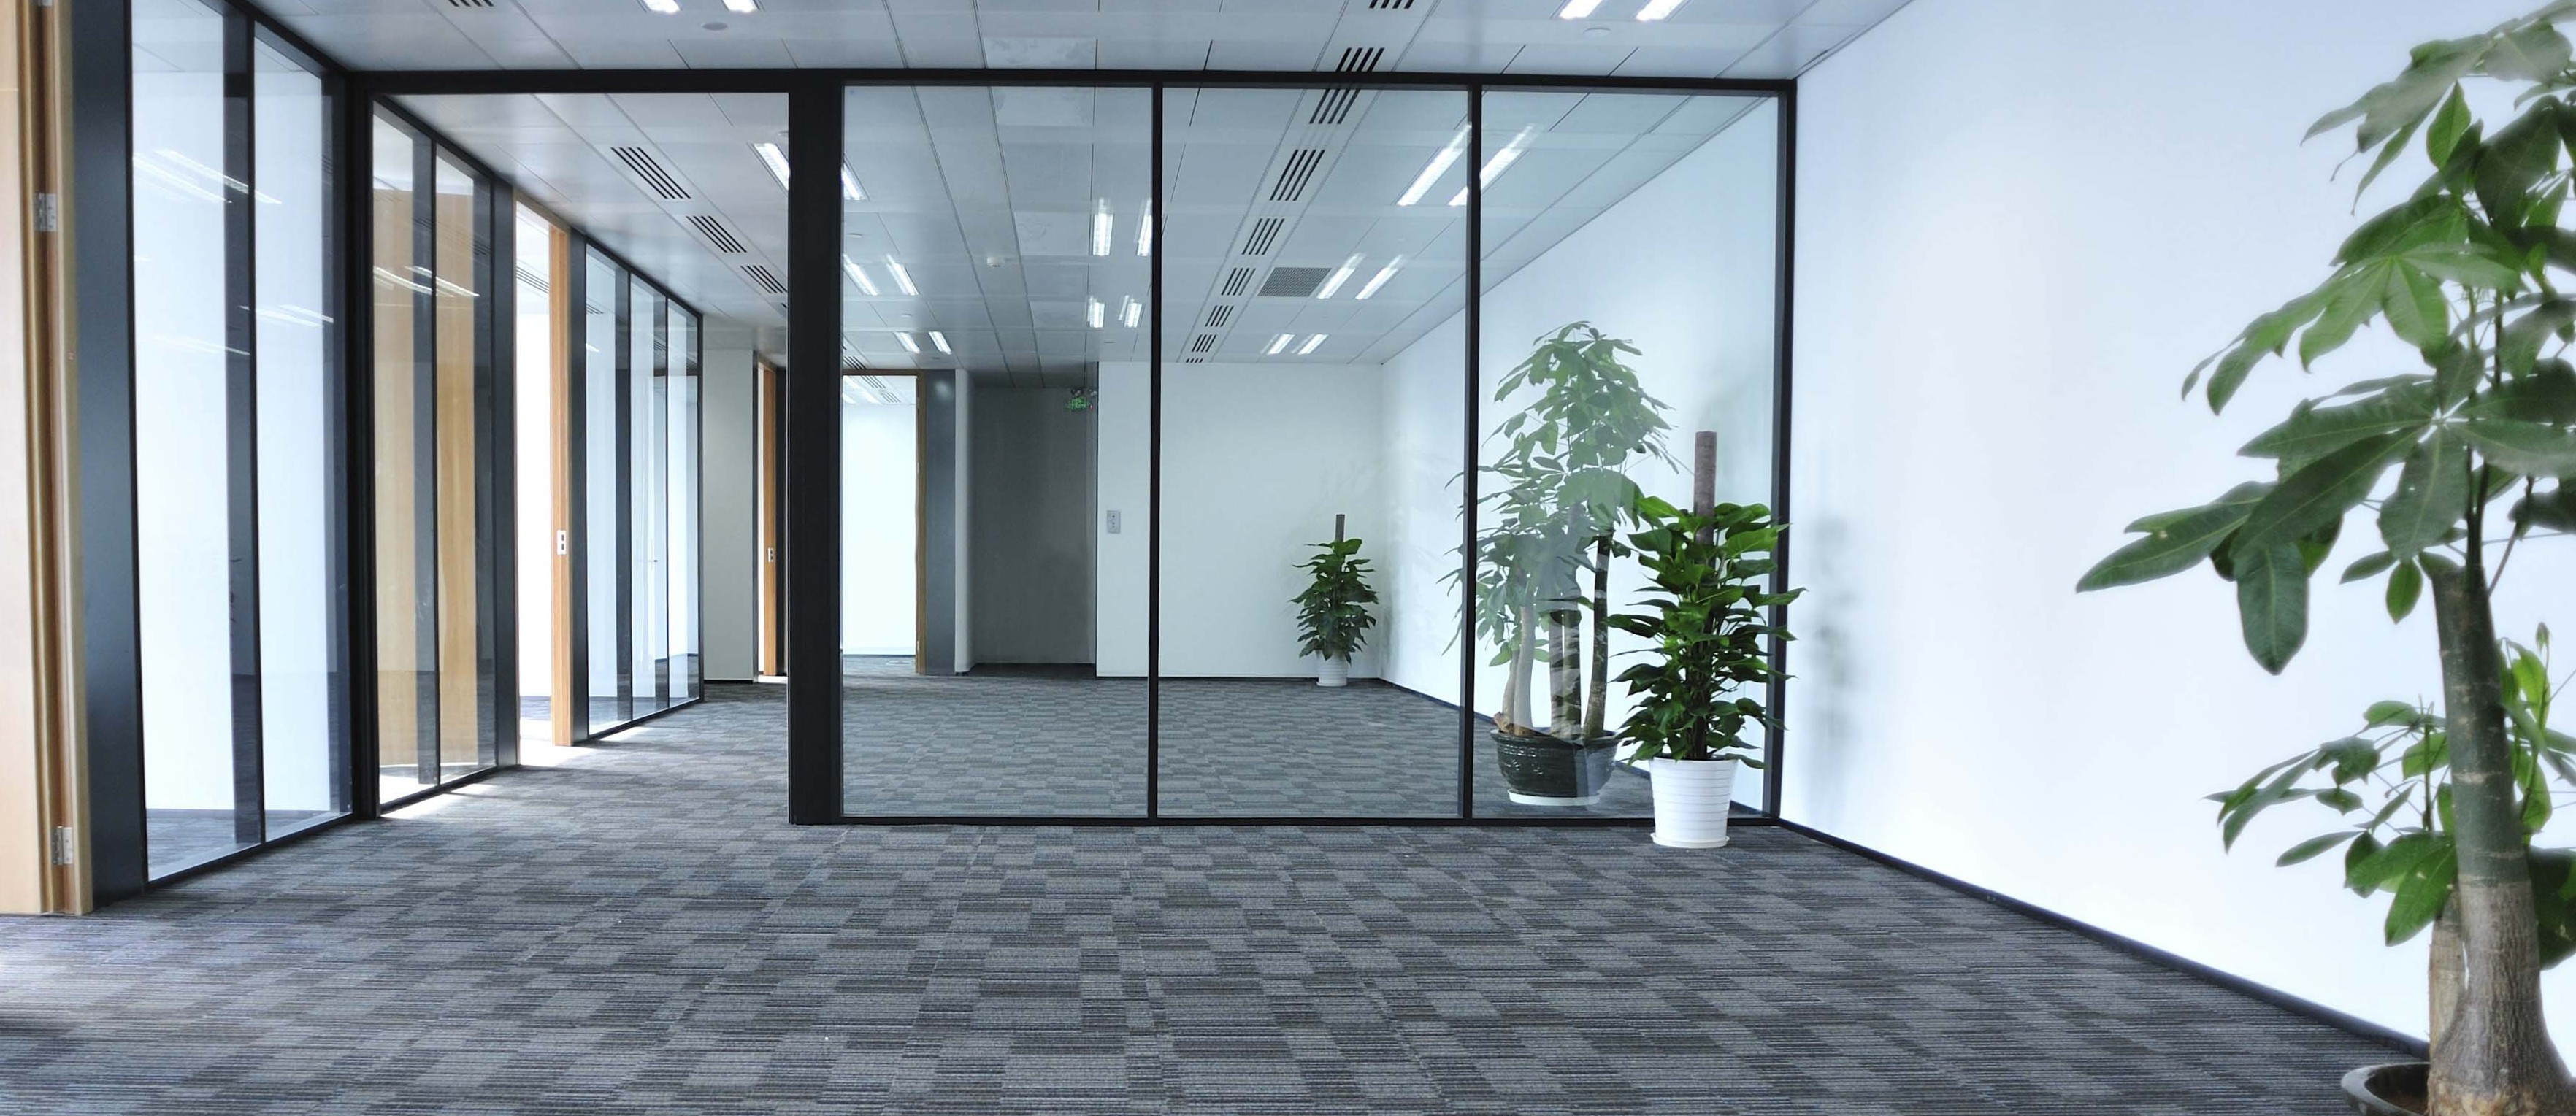 modern office flooring modern interior architecture empty modern office room clements hall commercial flooring